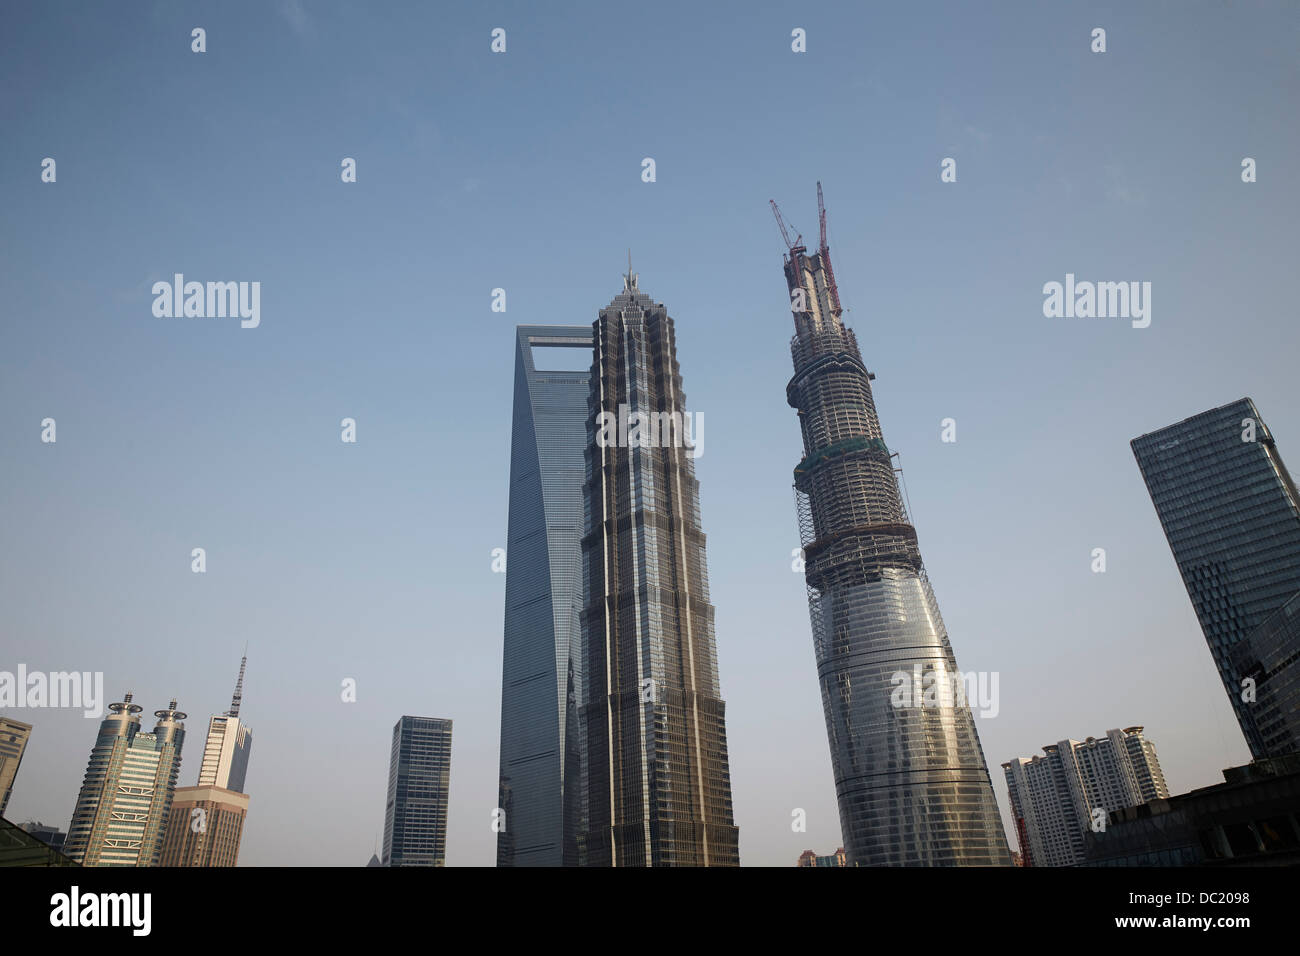 La Tour de Shanghai, tour Jin Mao et Centre mondial des finances de Shanghai, Shanghai, Chine Photo Stock